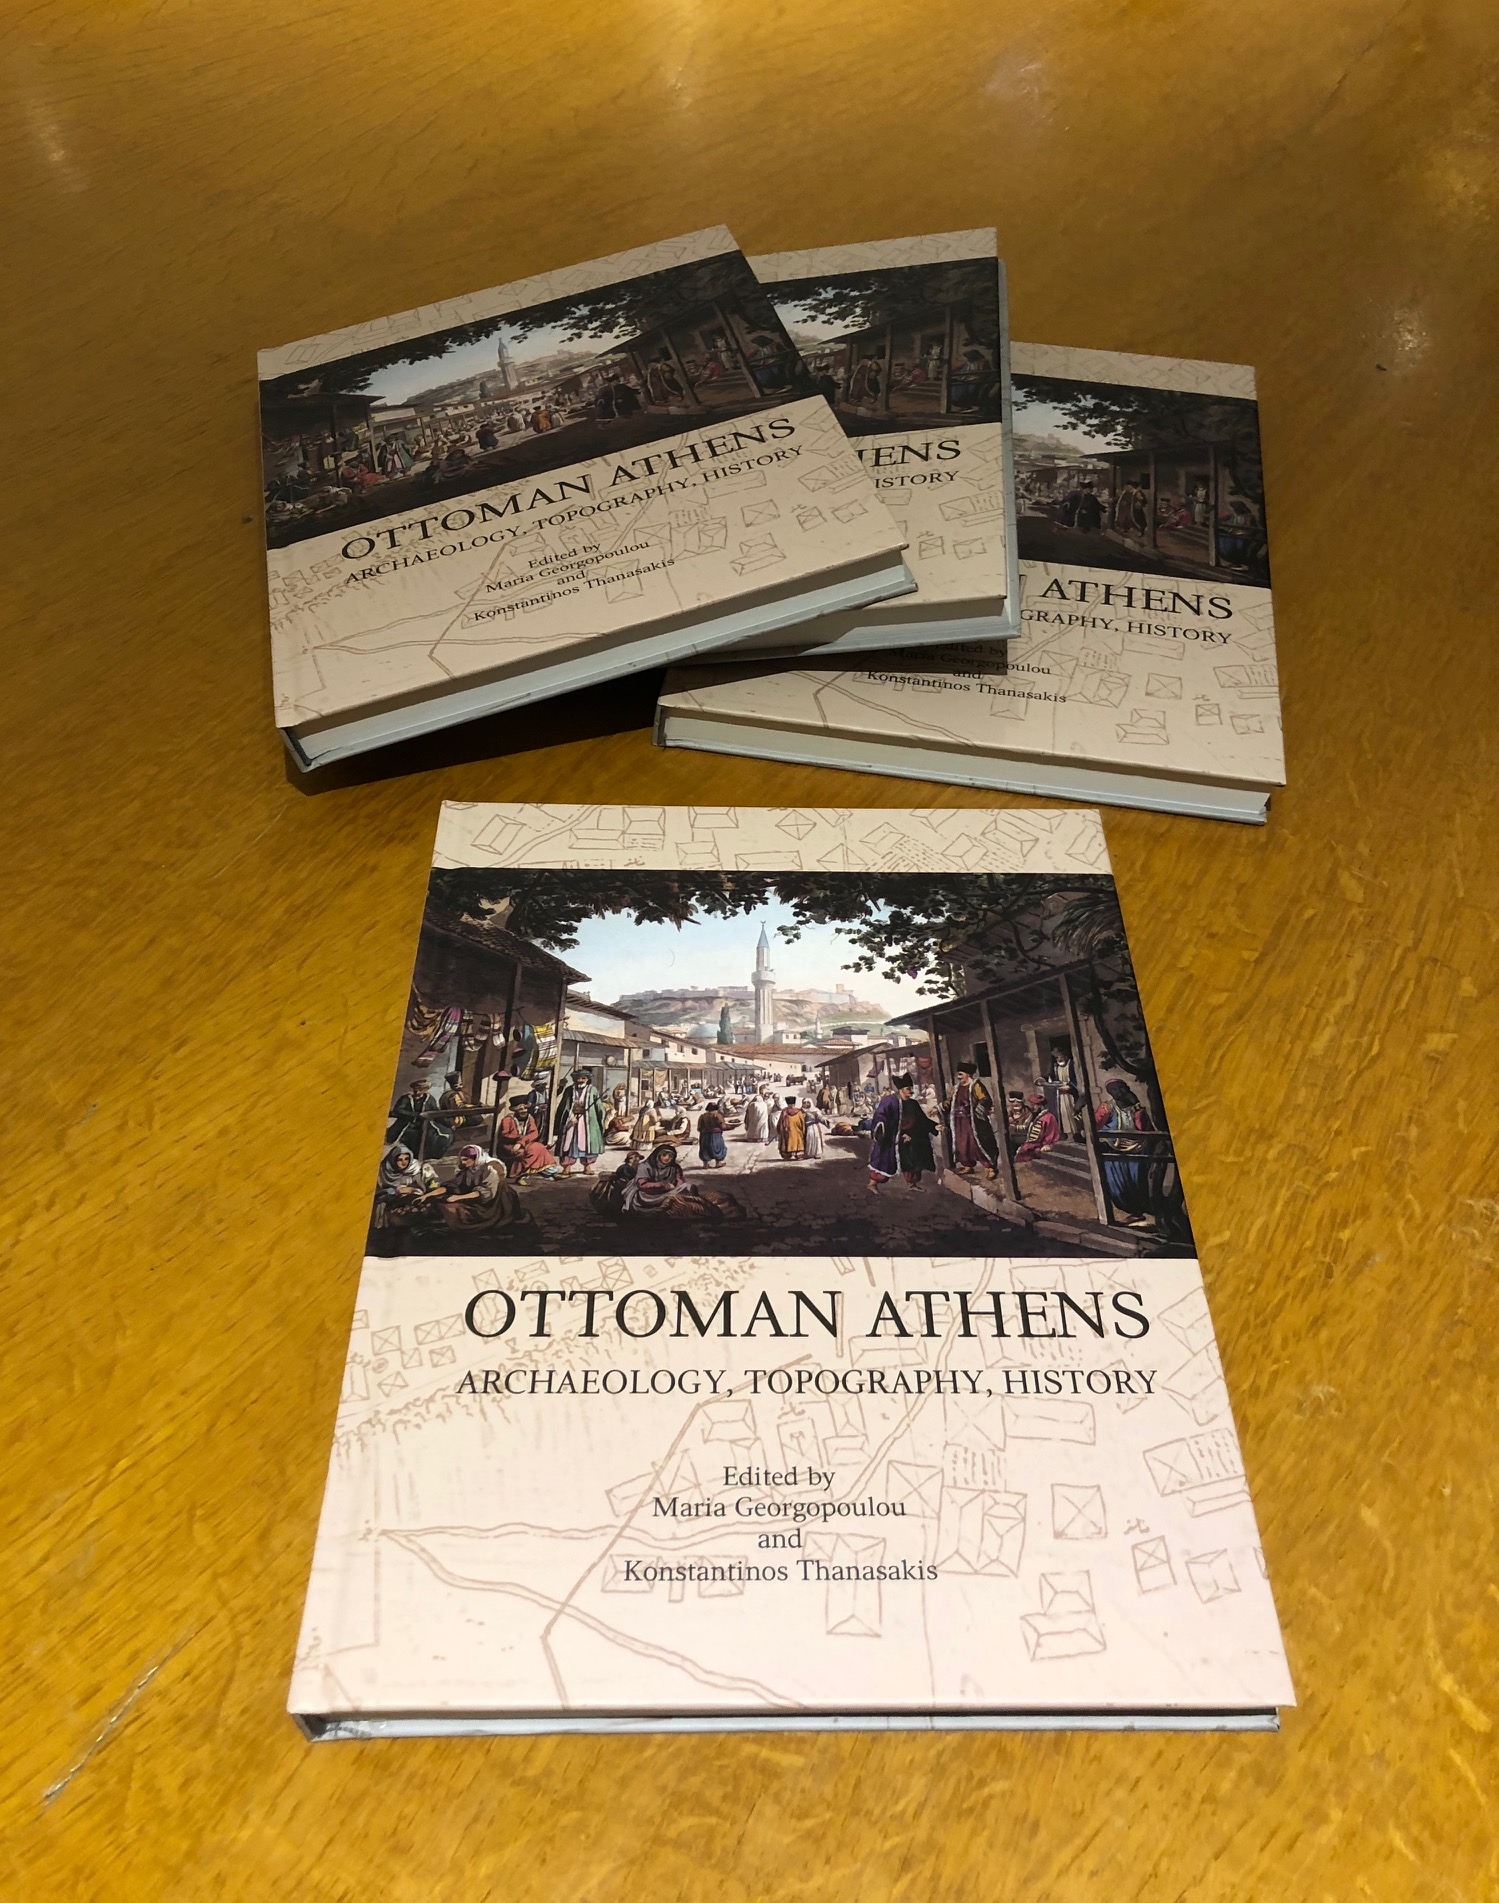 Home | American School of Classical Studies at Athens